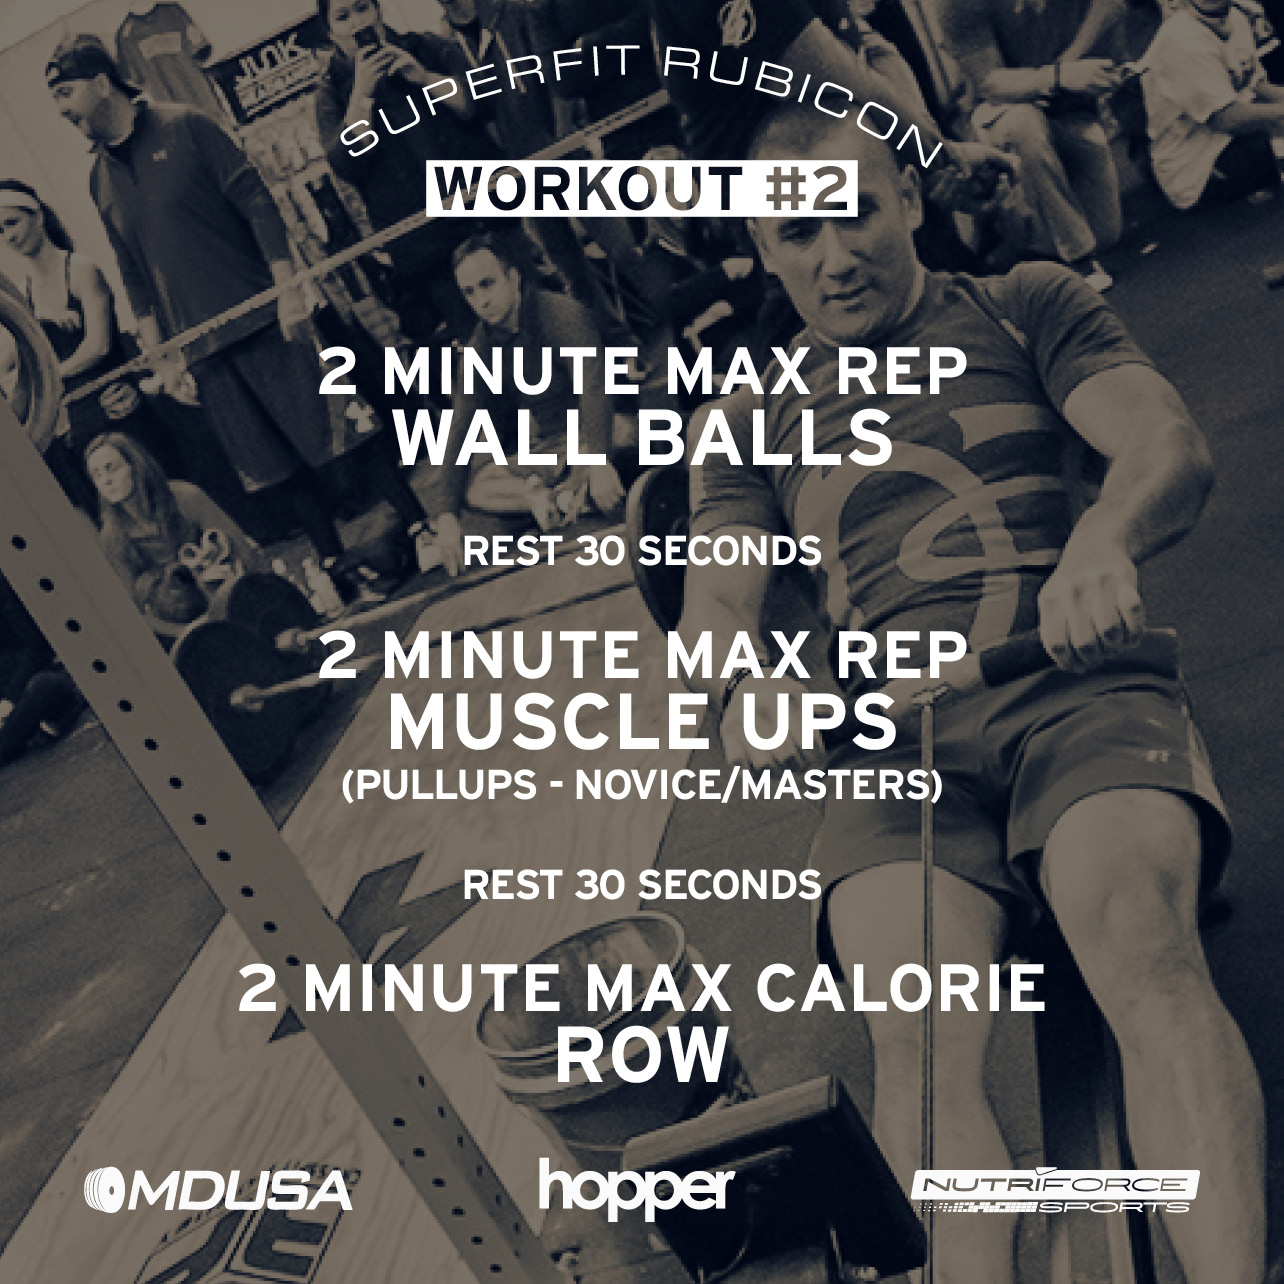 2014_superfit_rubicon_wod2